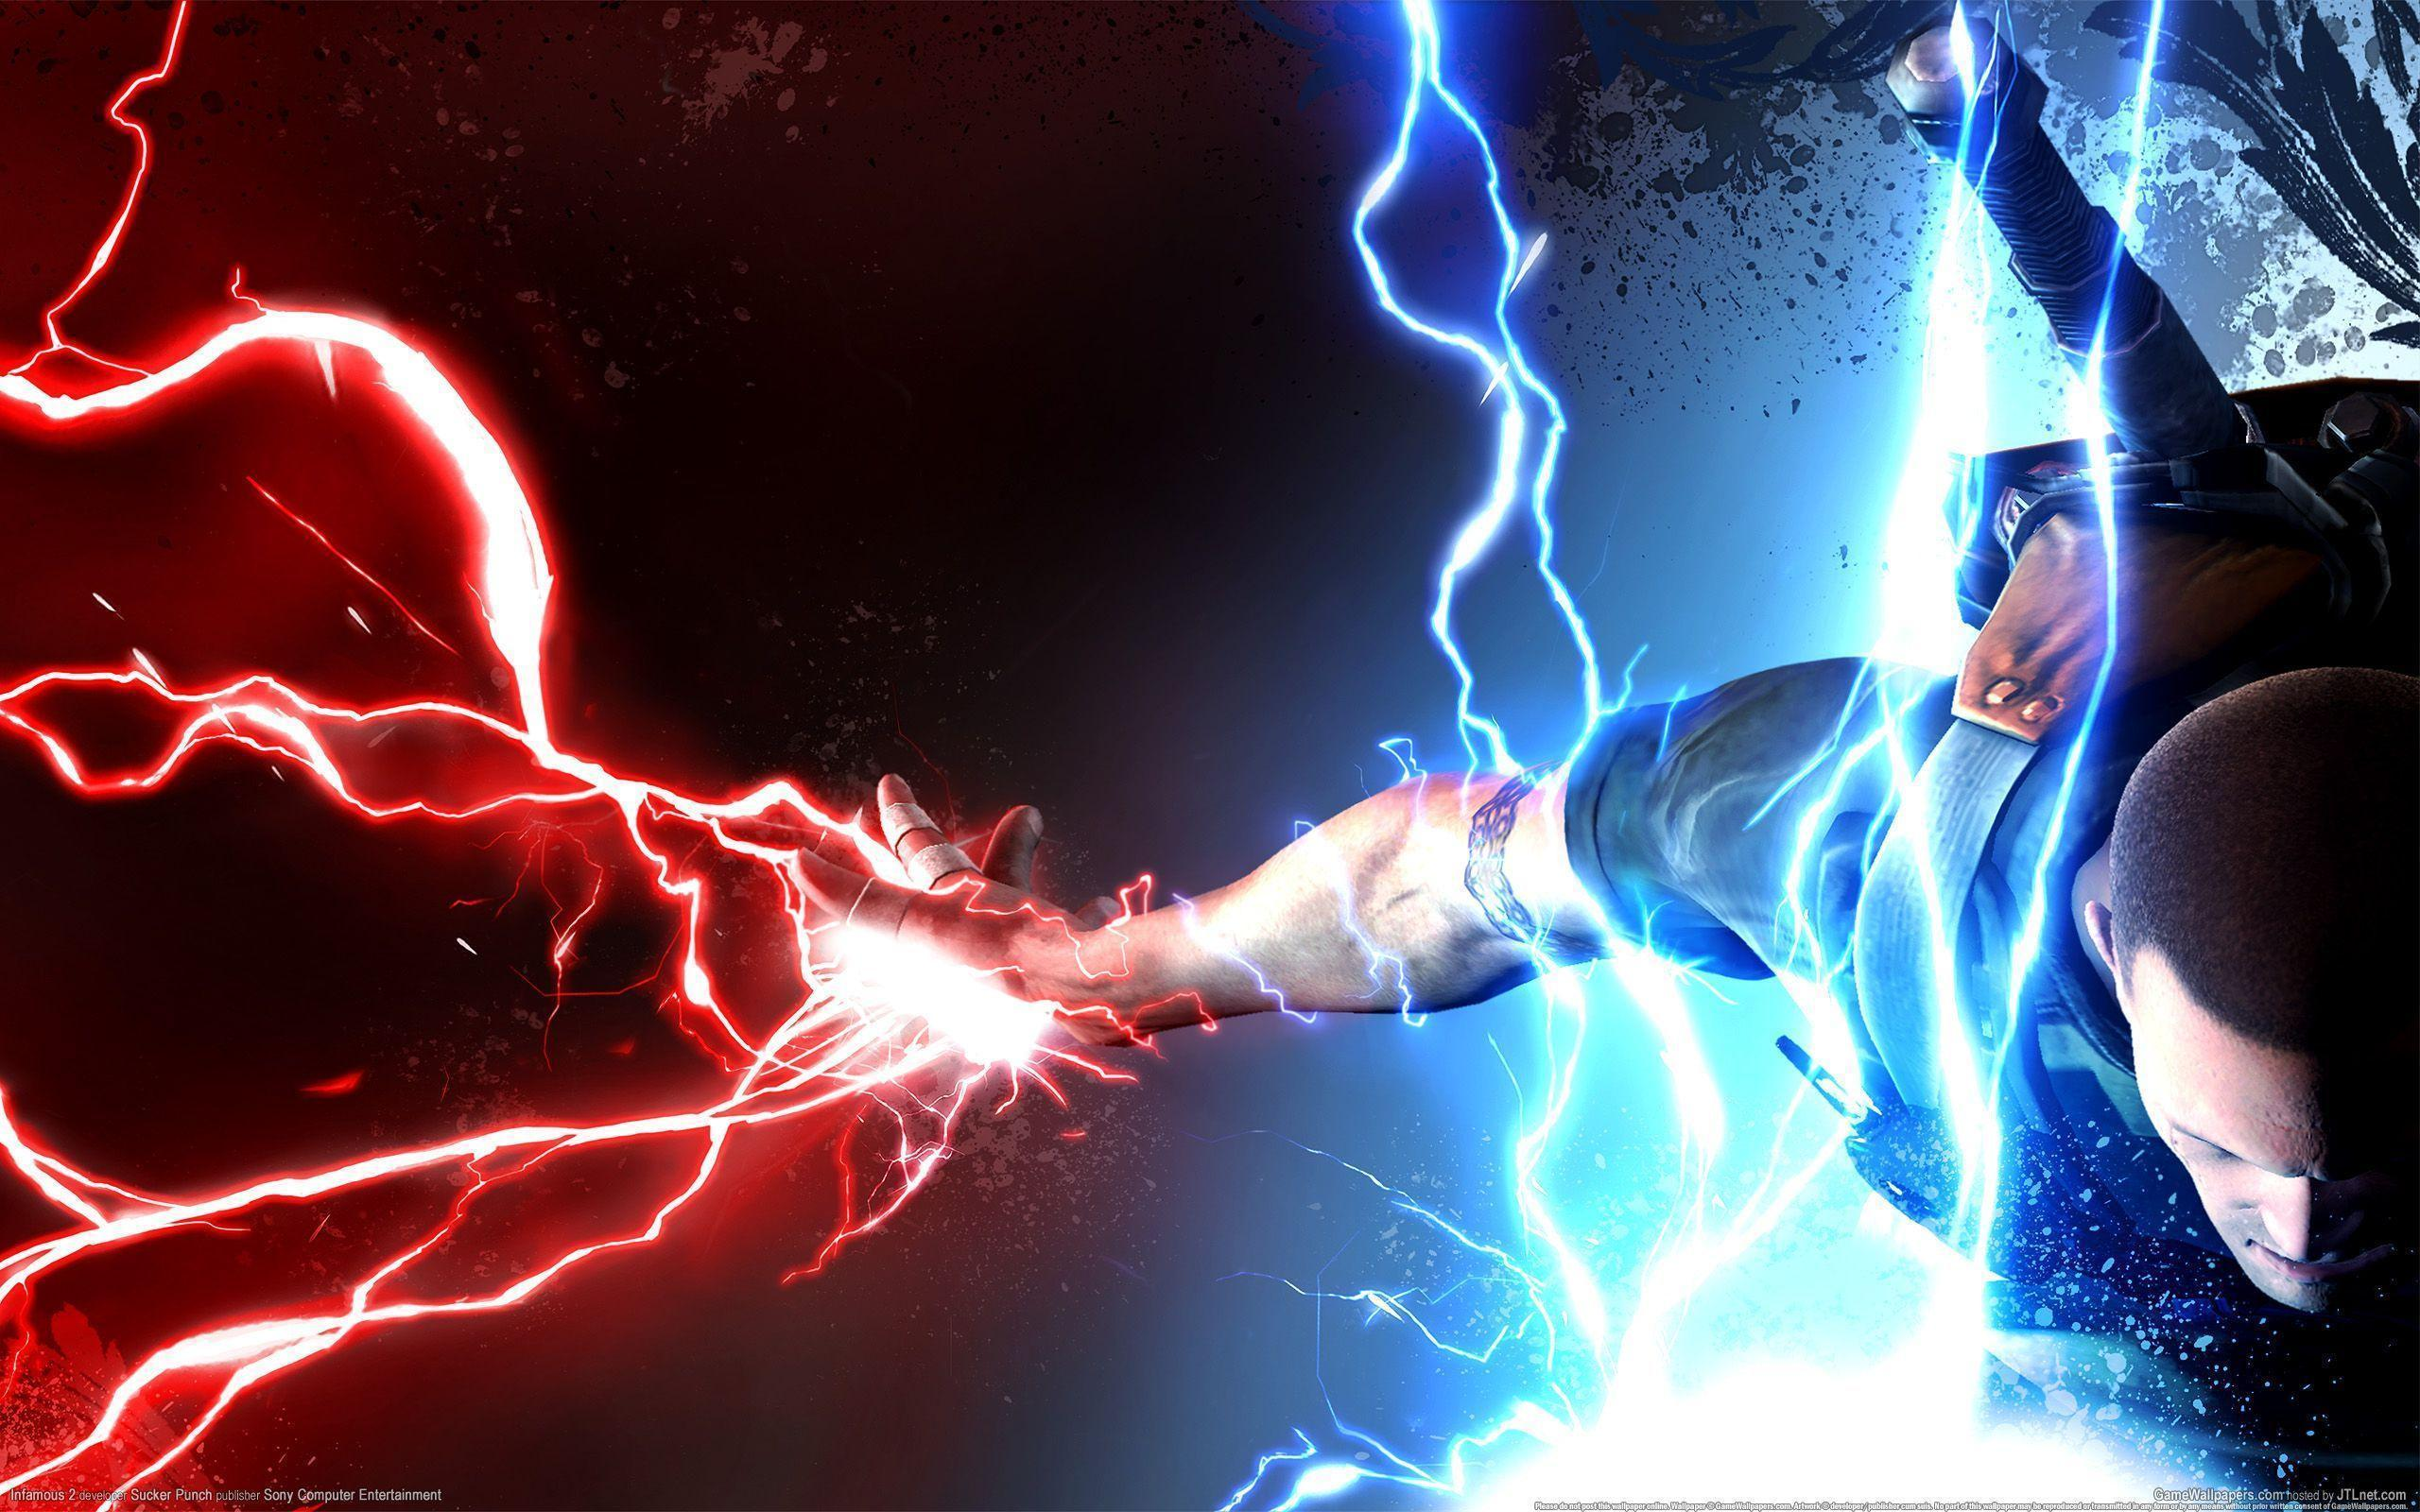 61+] Infamous 2 Wallpapers